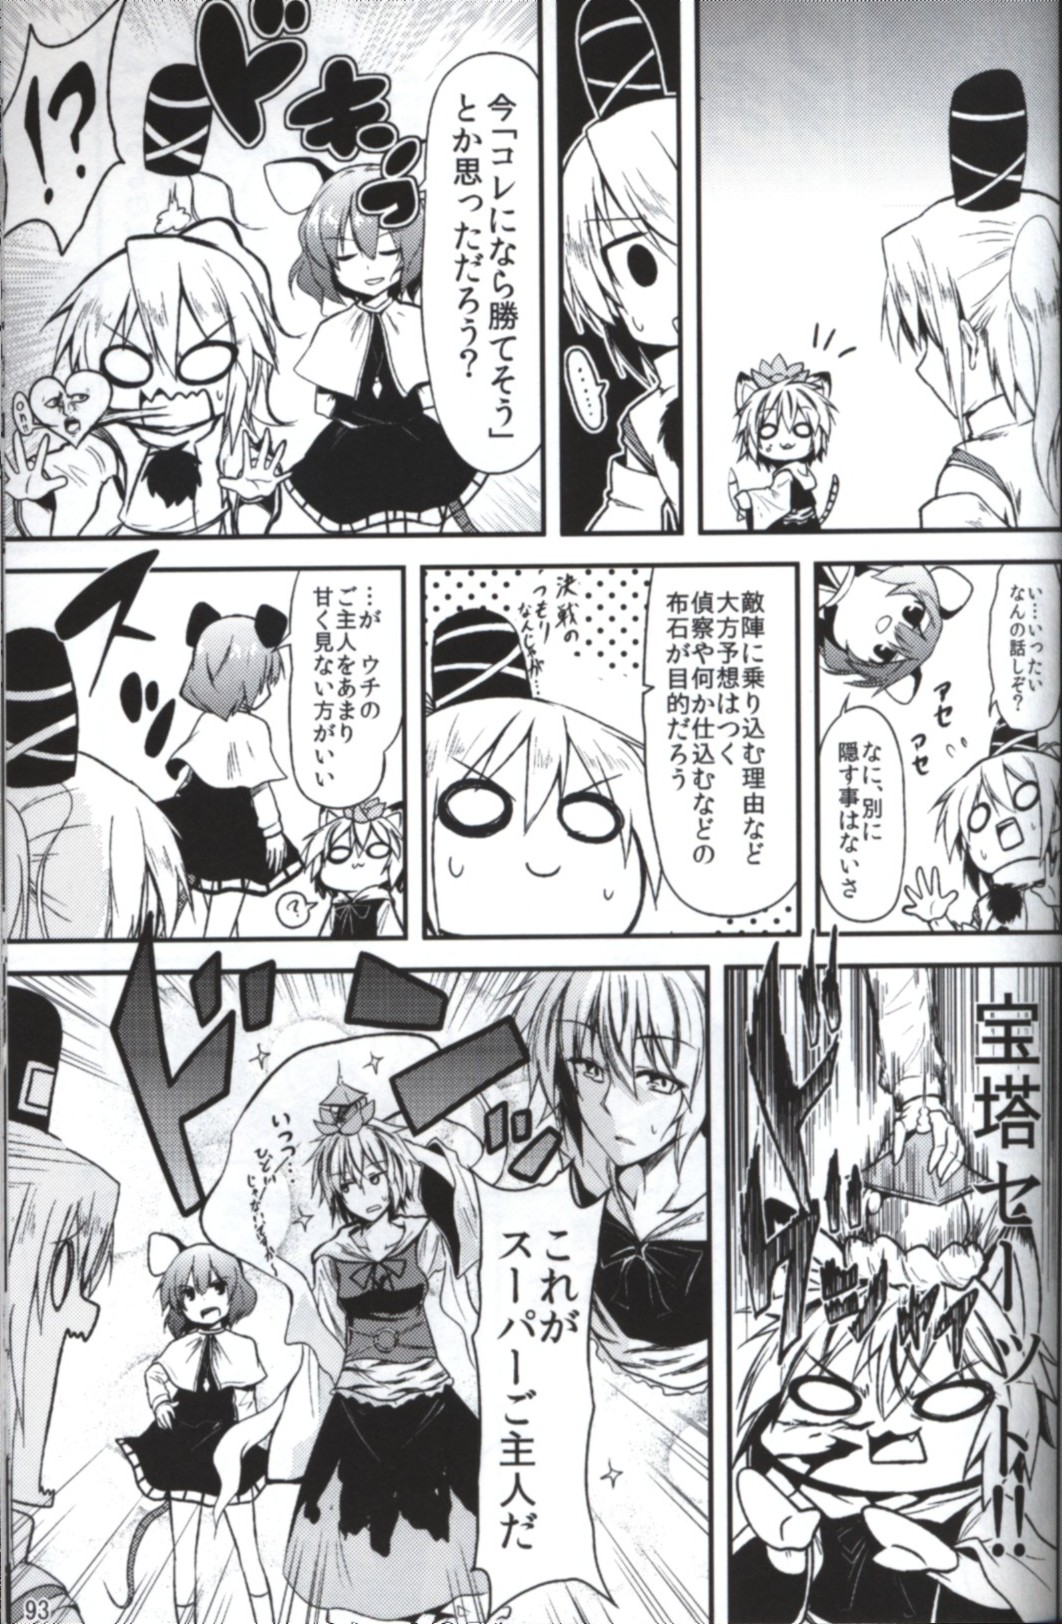 Doujinshi - Compilation - Touhou Project / All Characters (Touhou) (サークルあるたな総集編 さんむすEX) / Arutana